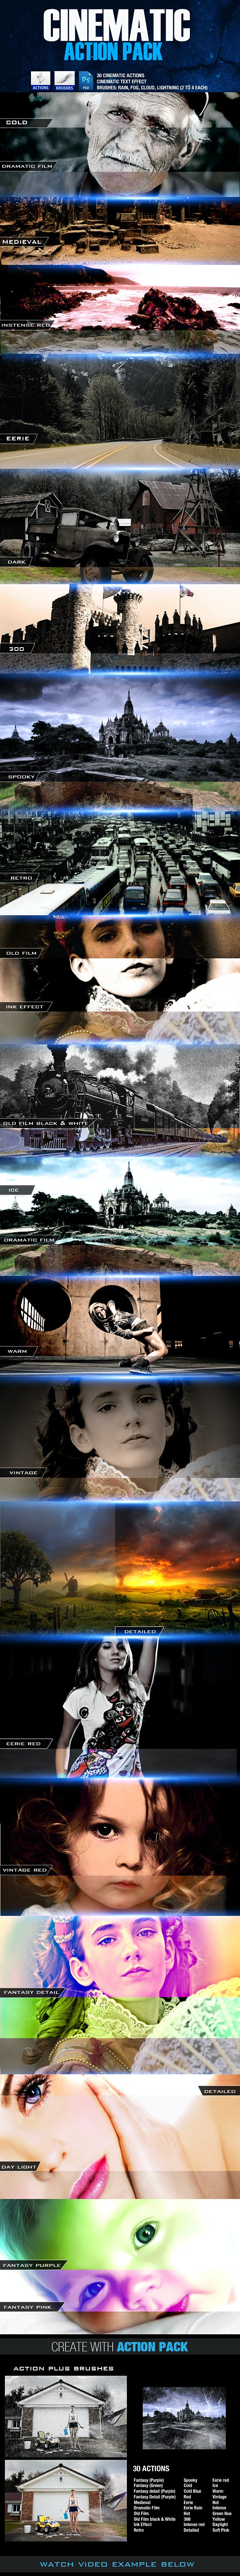 Cinematic Action Pack - Photo Effects Actions